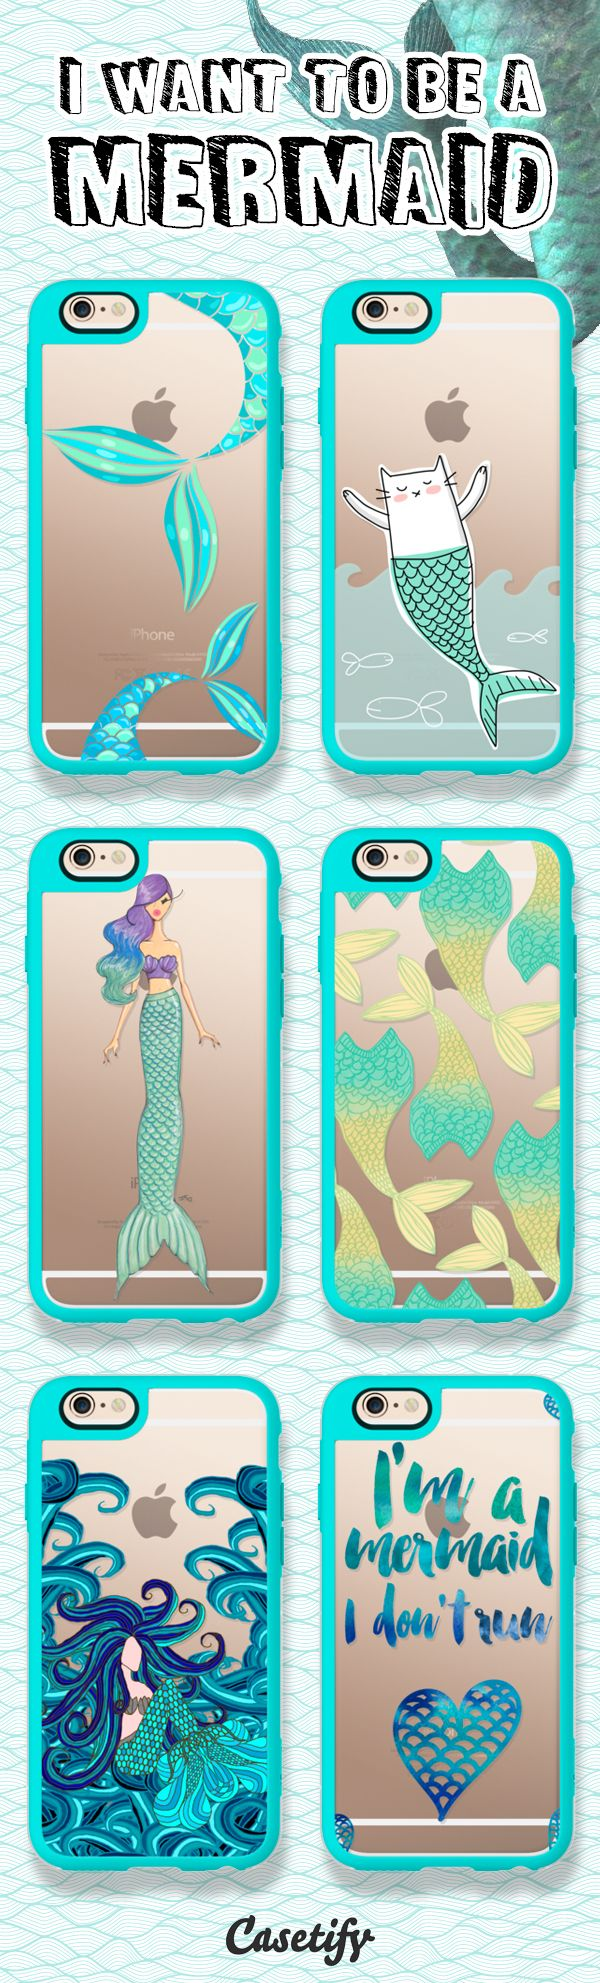 Every little girl dreams of being a mermaid. Tap this link to shop the mermaid iphone cases: https://www.casetify.com/artworks/1mf1sJpm60   @casetify